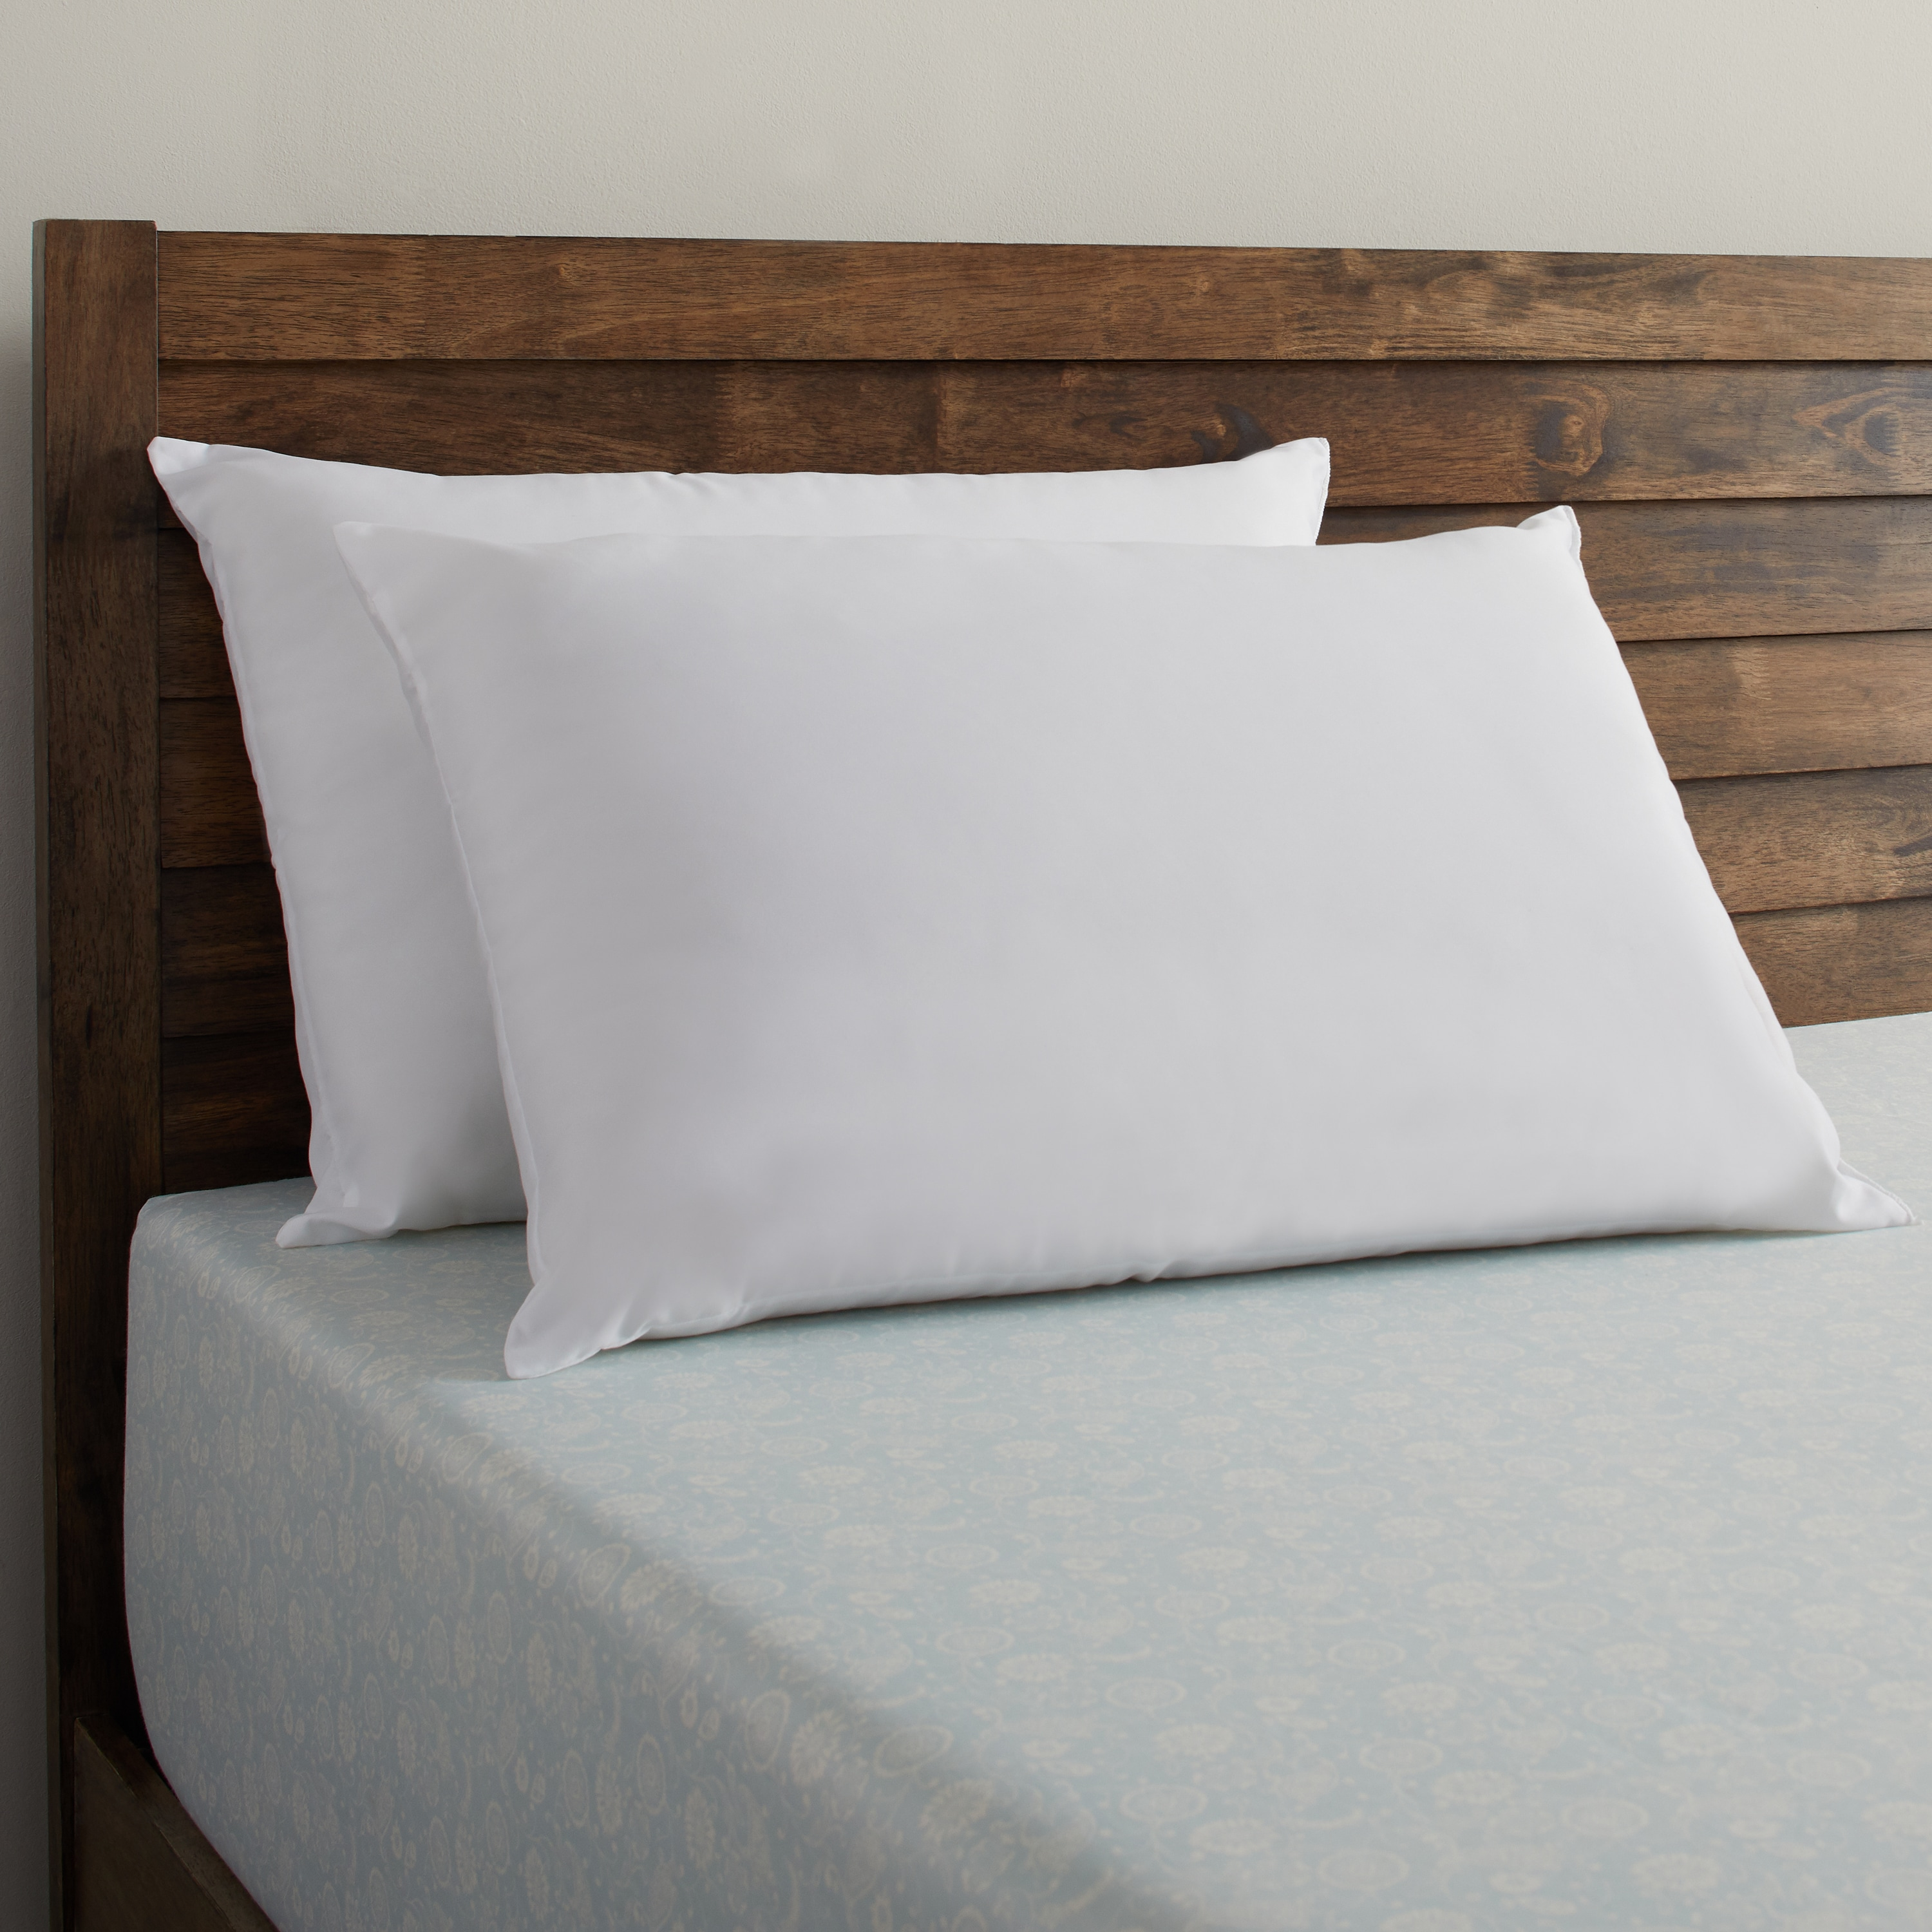 ultimate to bed this pillow arrange the howtodecorate your decorate arrangement bedpillows with on tons showroom of how in create pillows